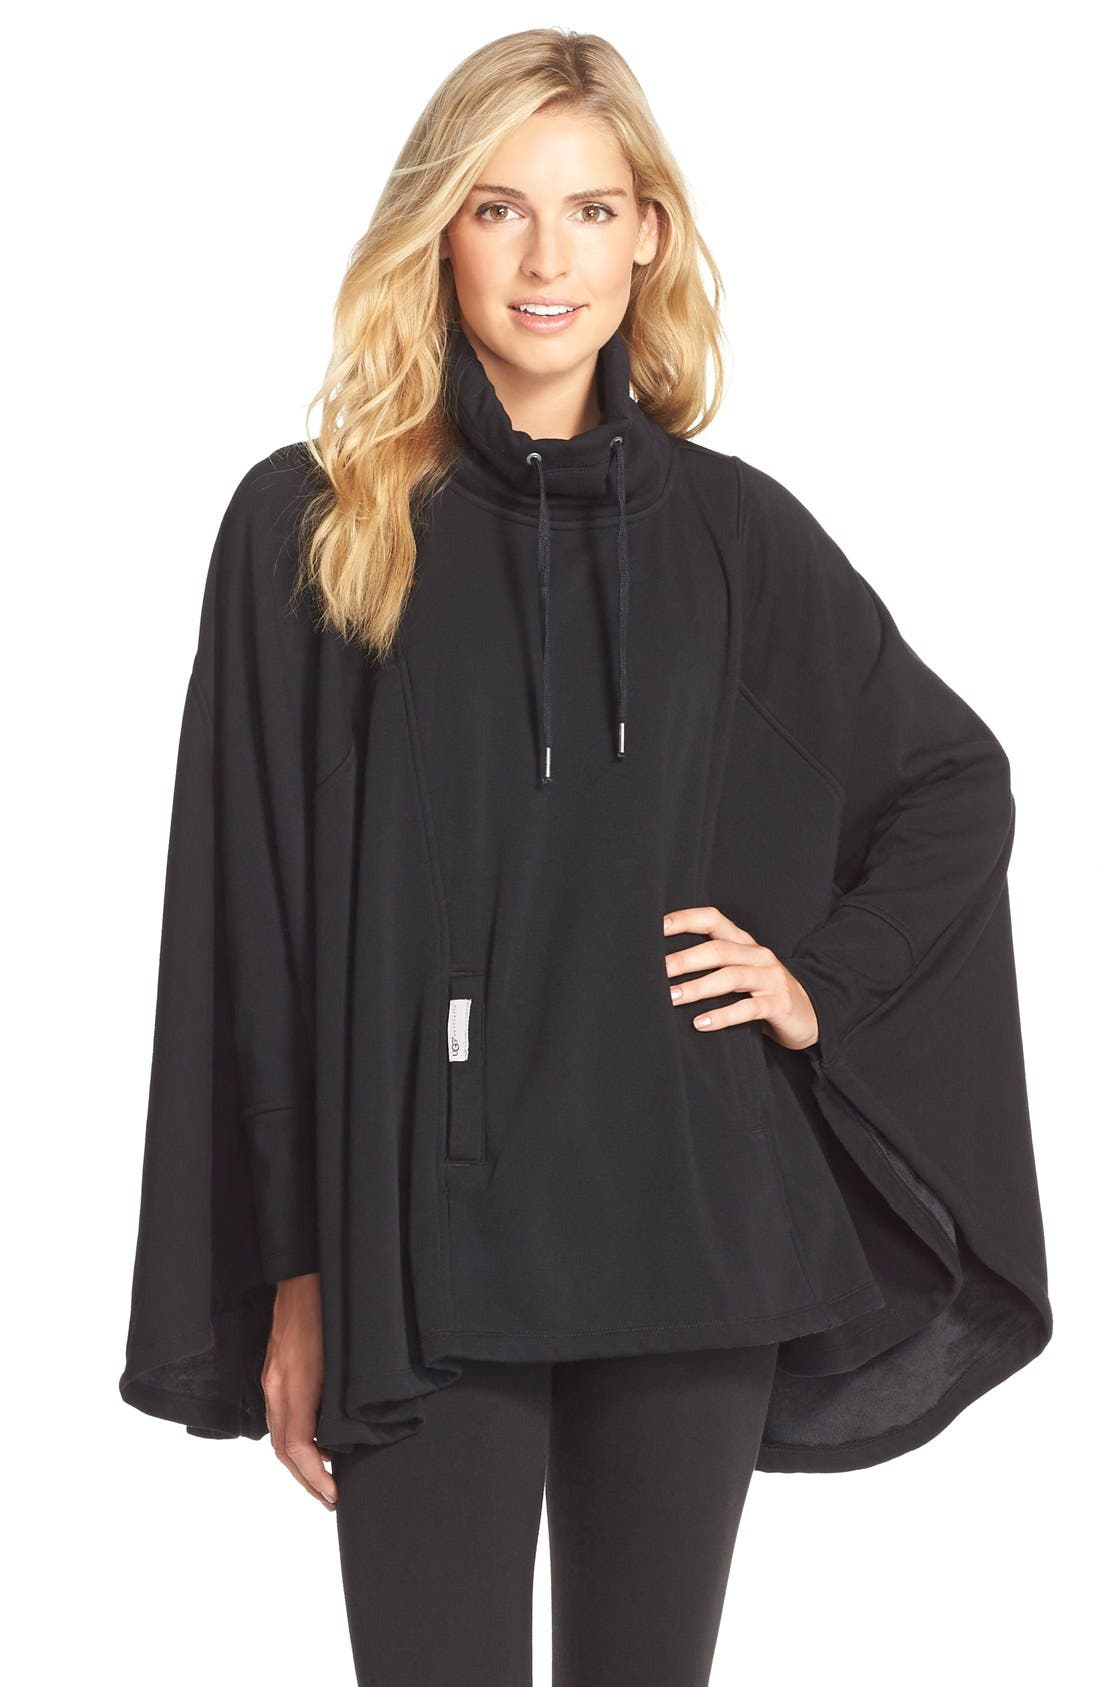 Pichot Turtleneck Poncho,                             Main thumbnail 1, color,                             BLACK